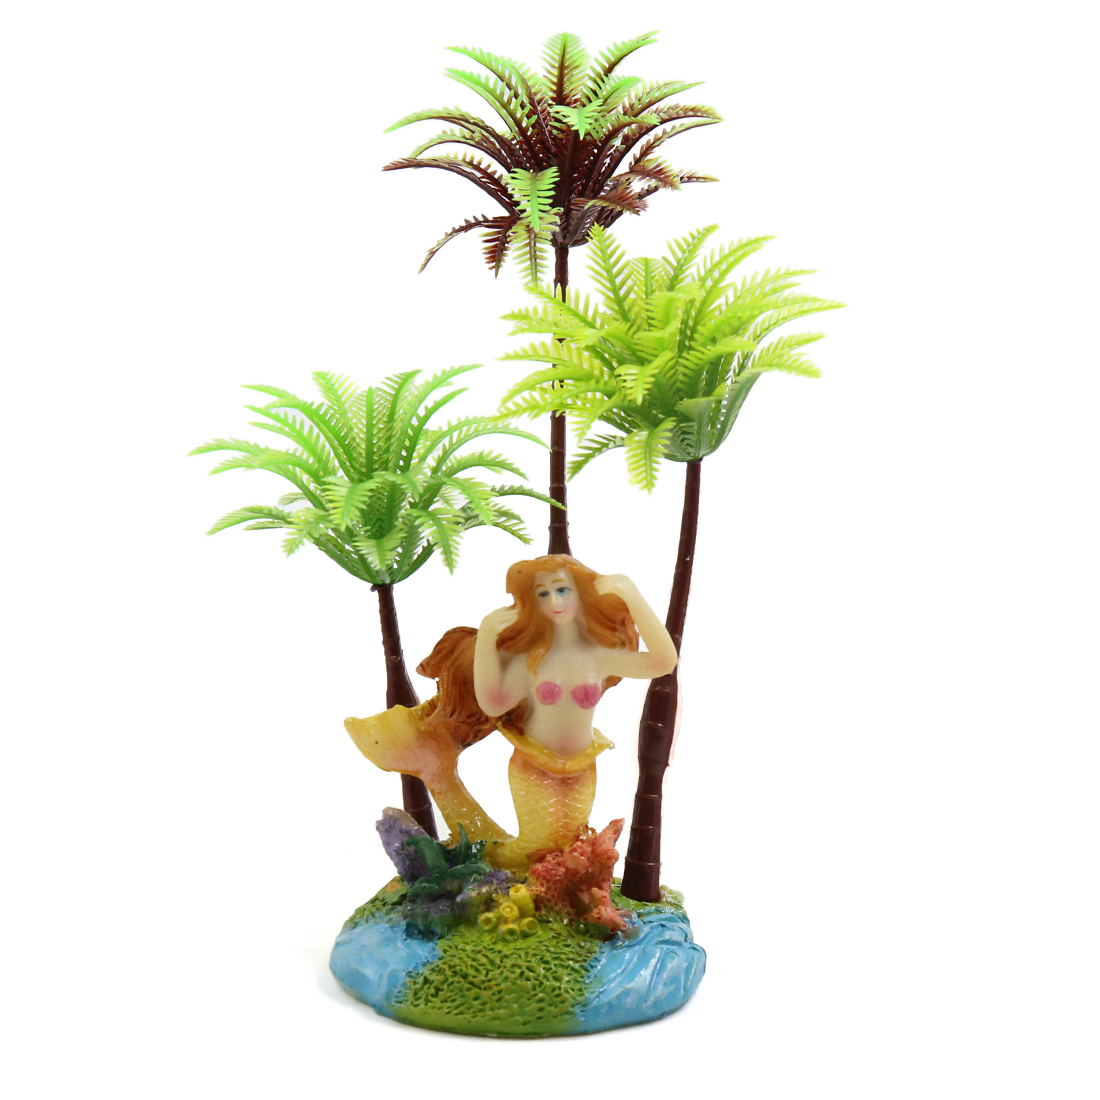 Plastic Coconut Tree Plant Aquarium Tank Aquascape Decorative Ornaments w/ Stand